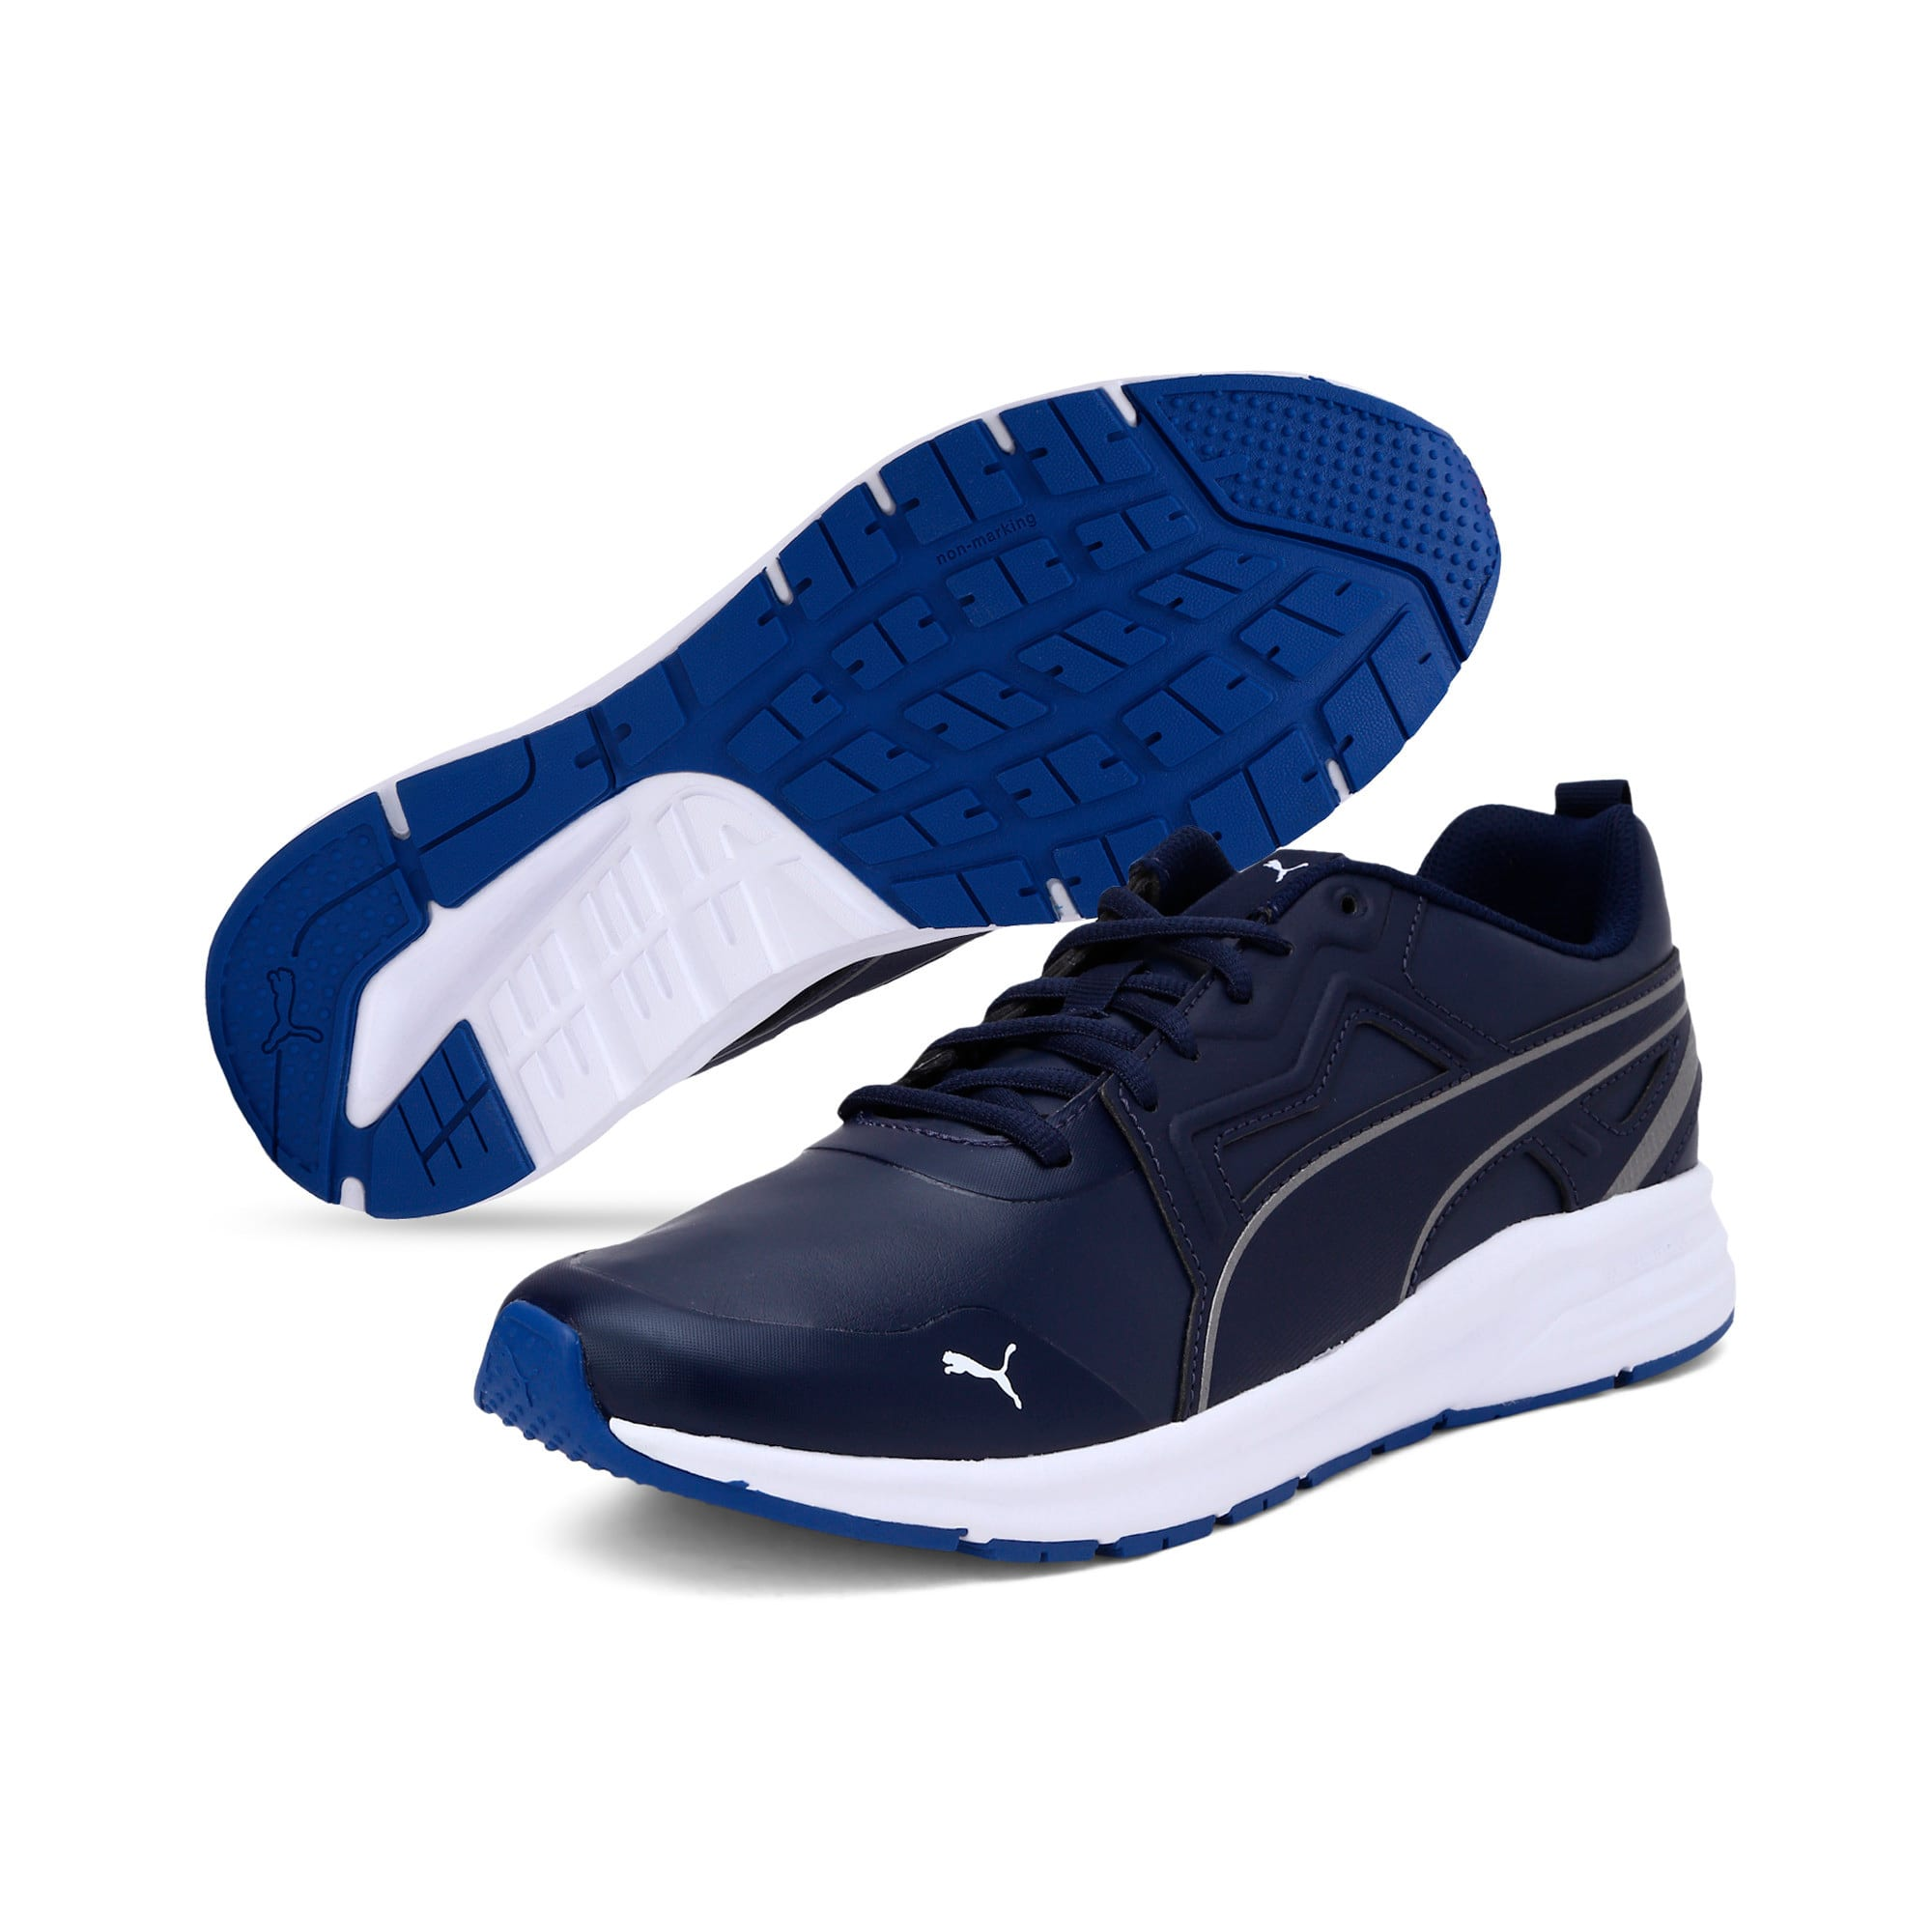 Thumbnail 4 of Pure Jogger SL Trainers, Peacoat-Silver-White-Blue, medium-IND